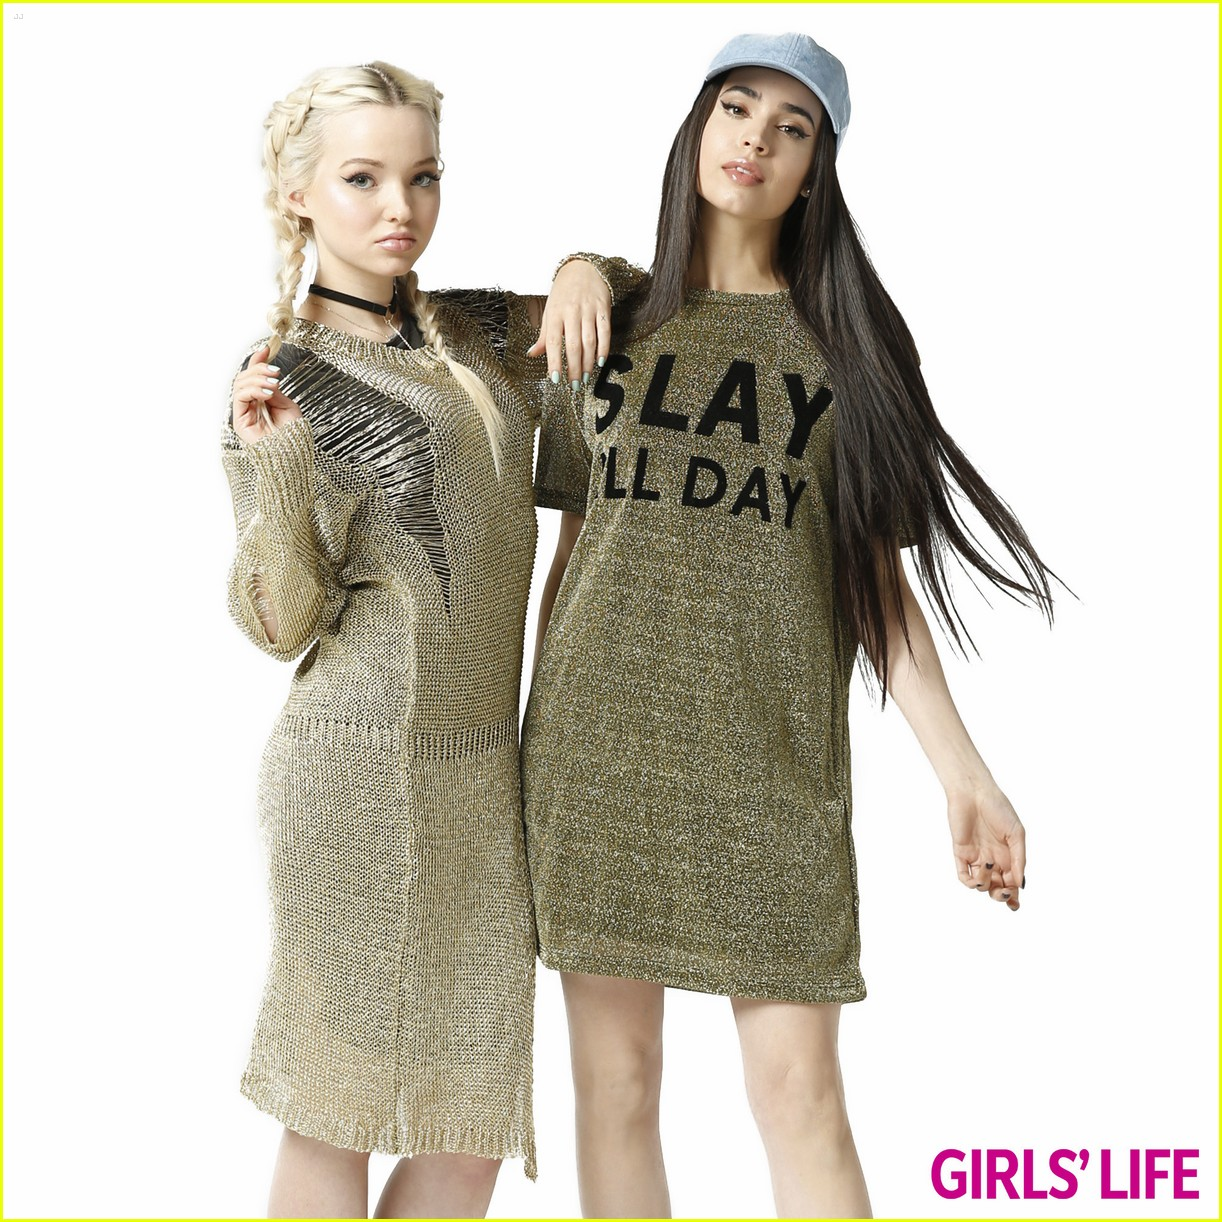 dove cameron sofia carson china mcclain gl covers 02